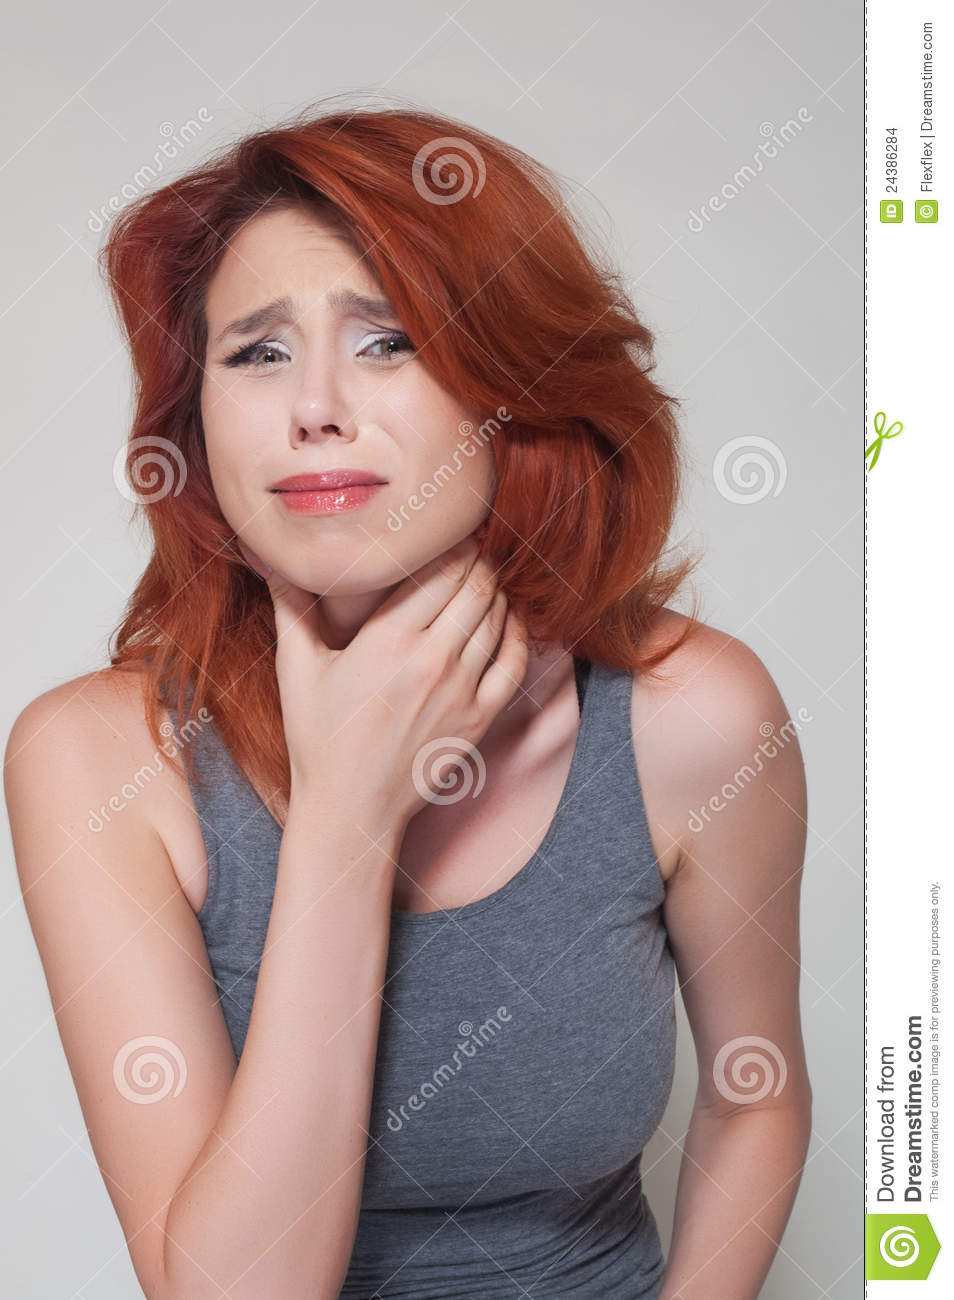 Stock Images: Young girl with sore throat